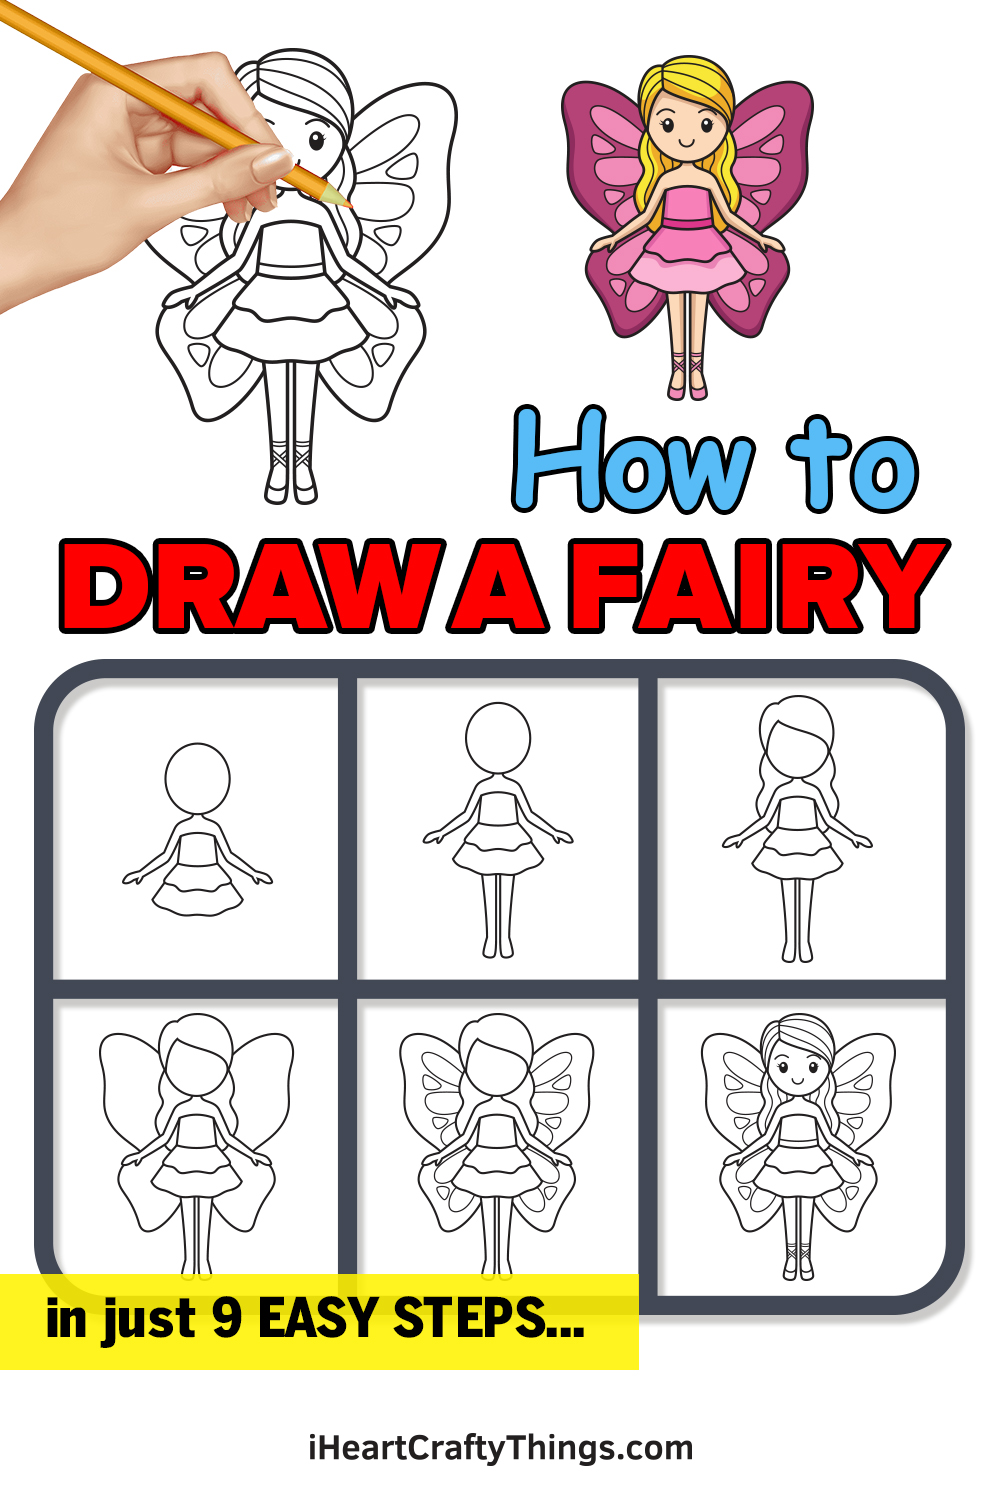 How to Draw a Fairy in 9 Easy Steps